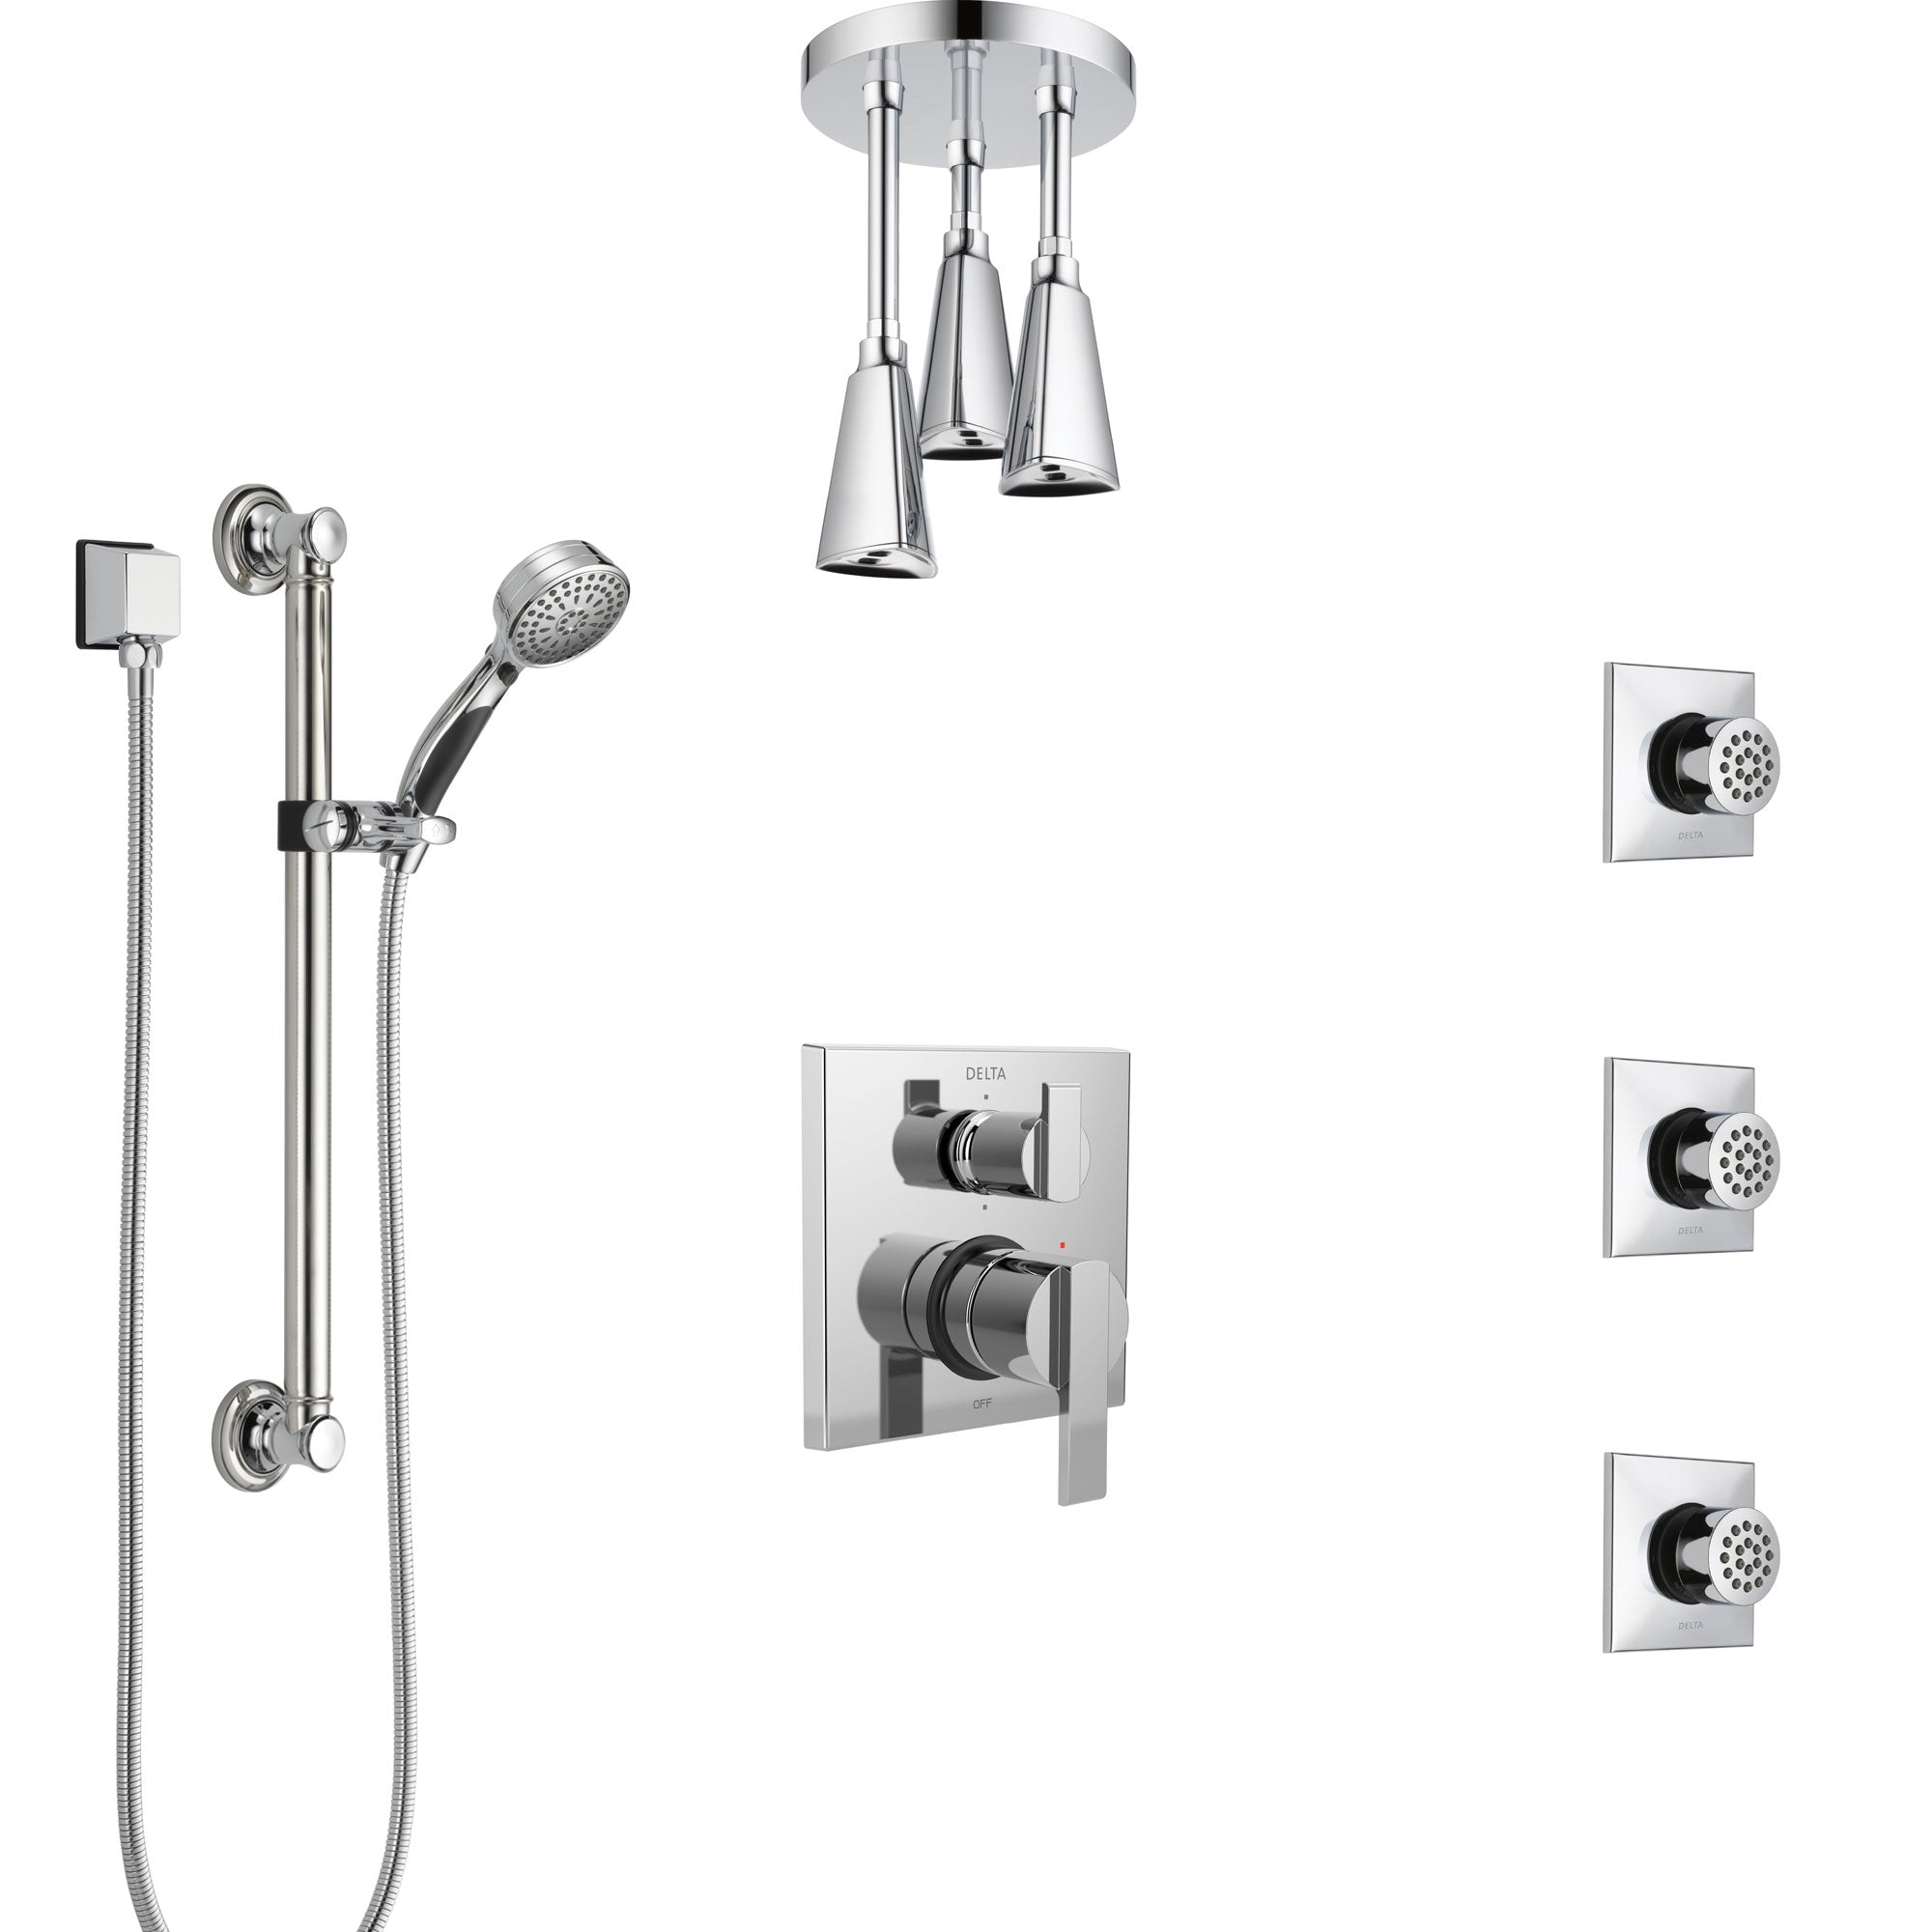 Delta Ara Chrome Shower System with Control Handle, Integrated Diverter, Ceiling Mount Showerhead, 3 Body Sprays, and Grab Bar Hand Shower SS249674